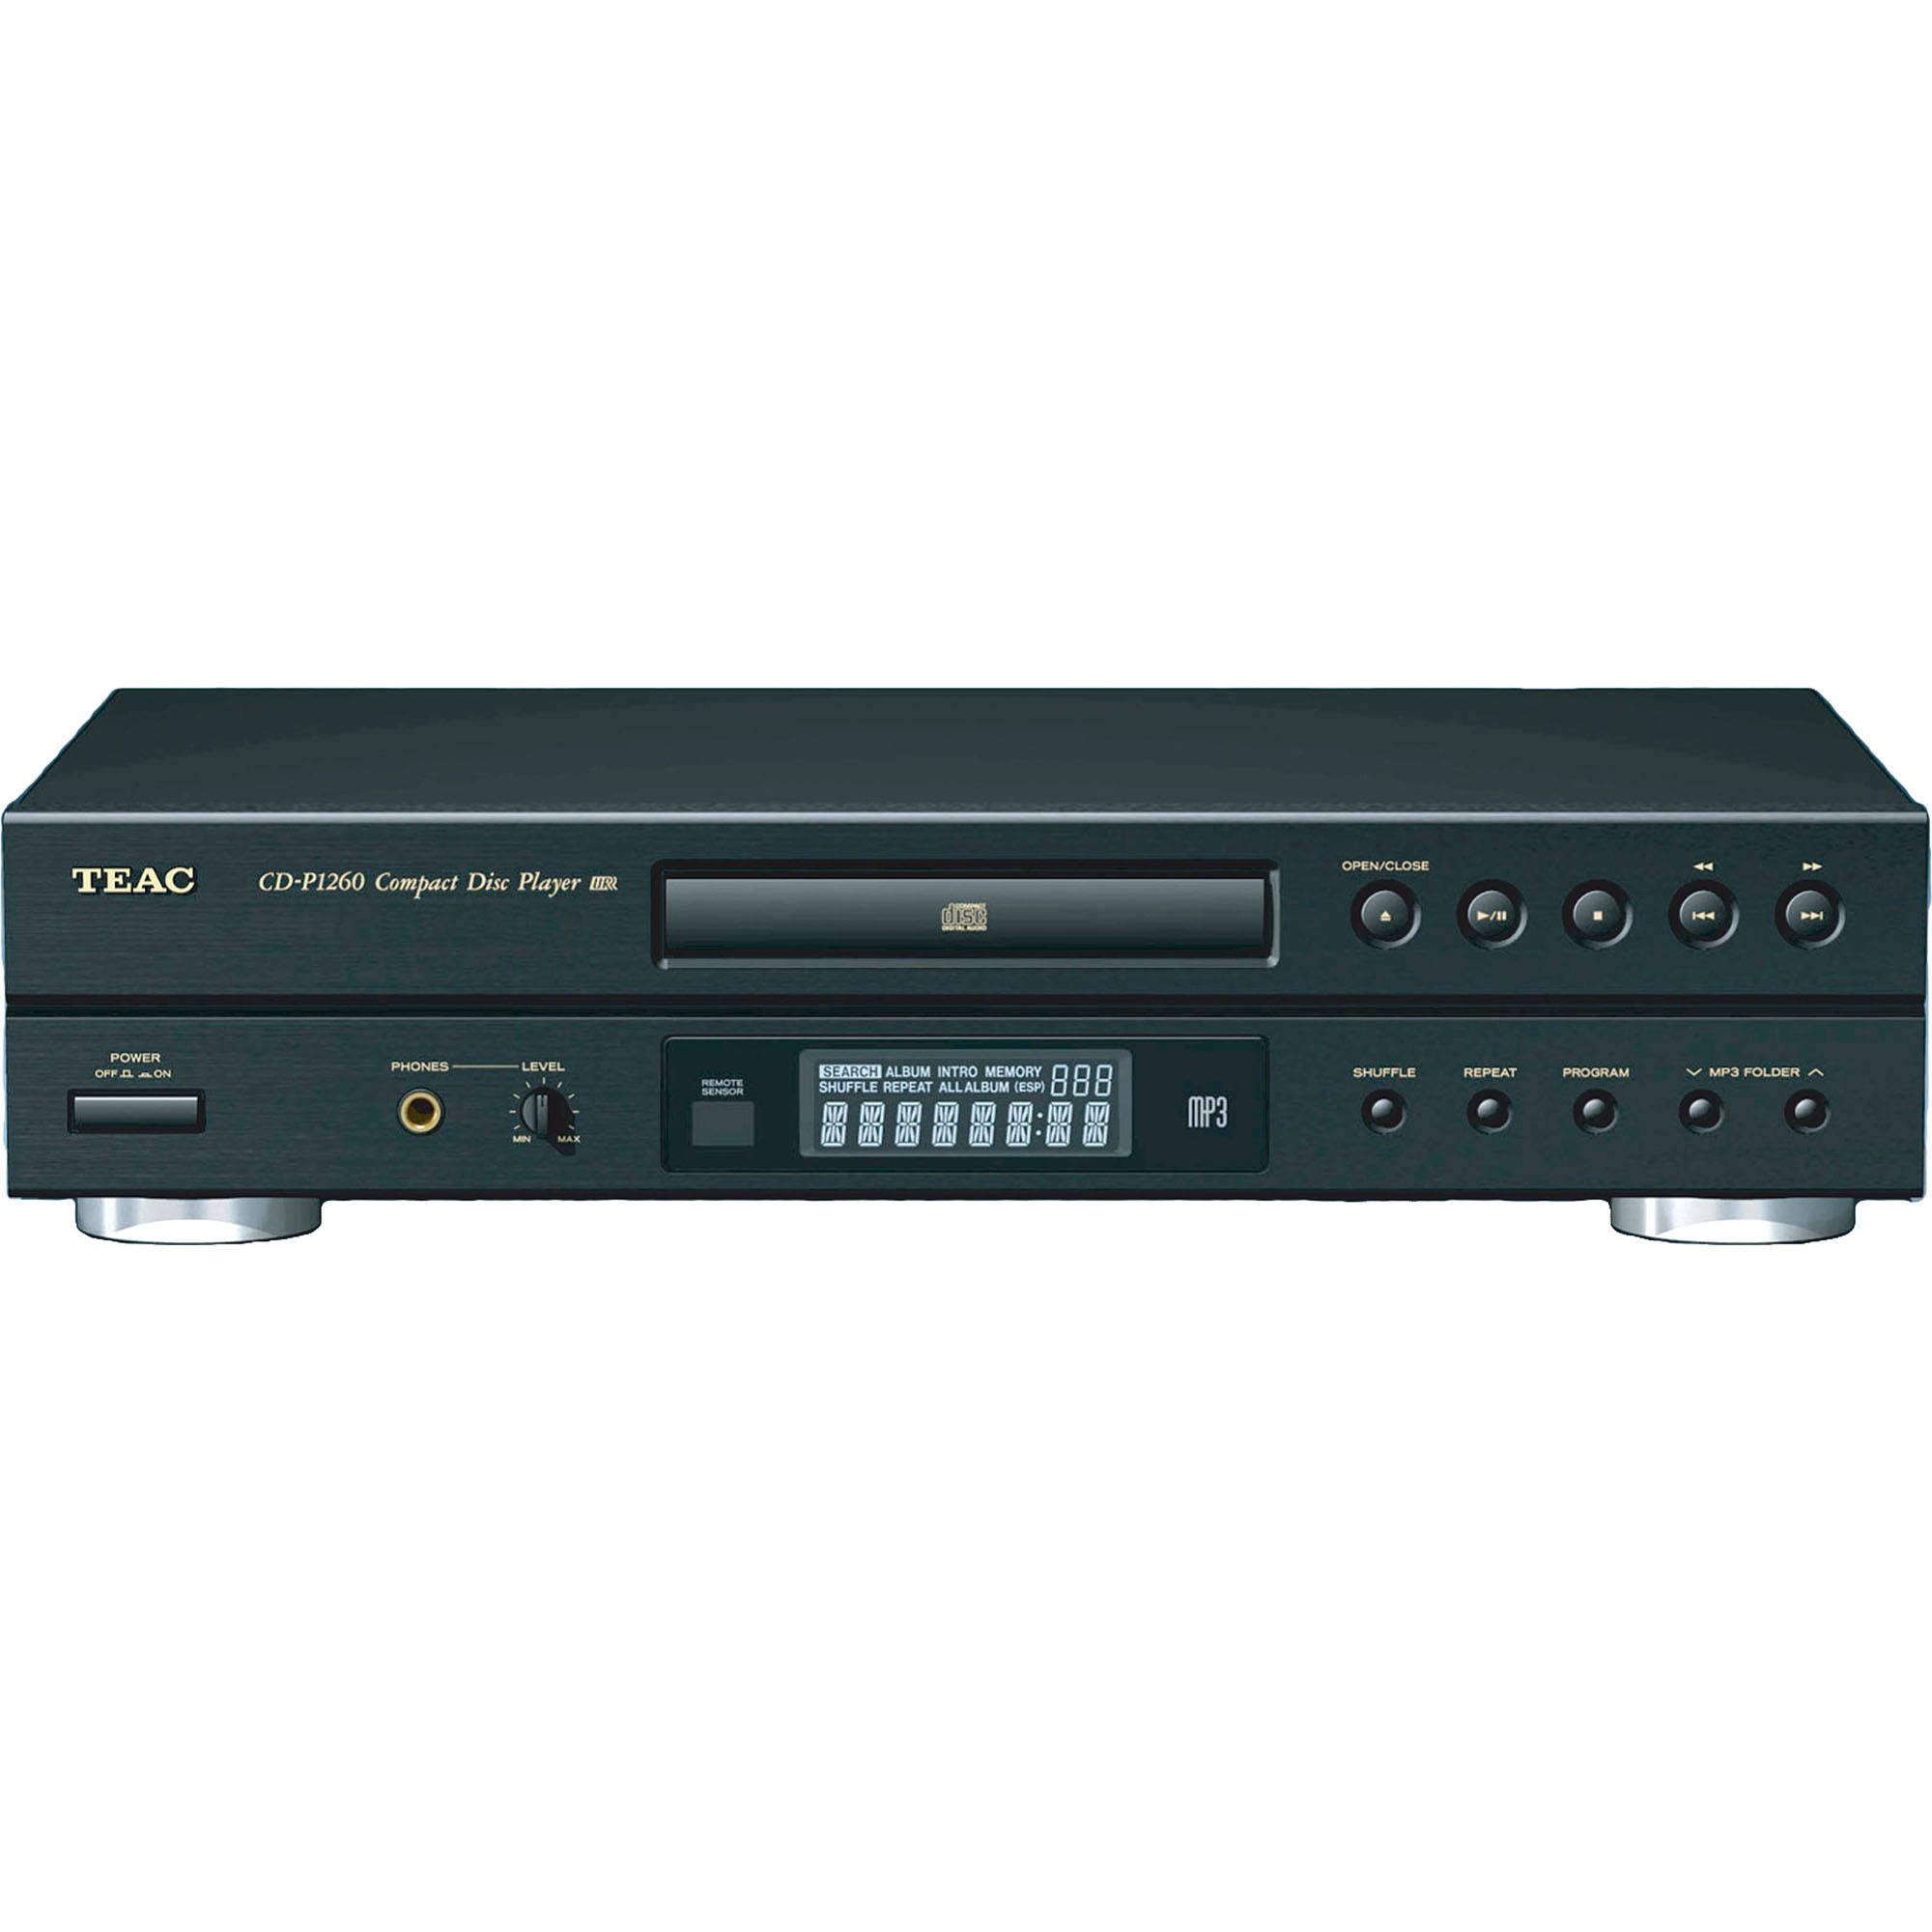 teac cd p1260 mp3 cd player cd p1260 b h photo video. Black Bedroom Furniture Sets. Home Design Ideas